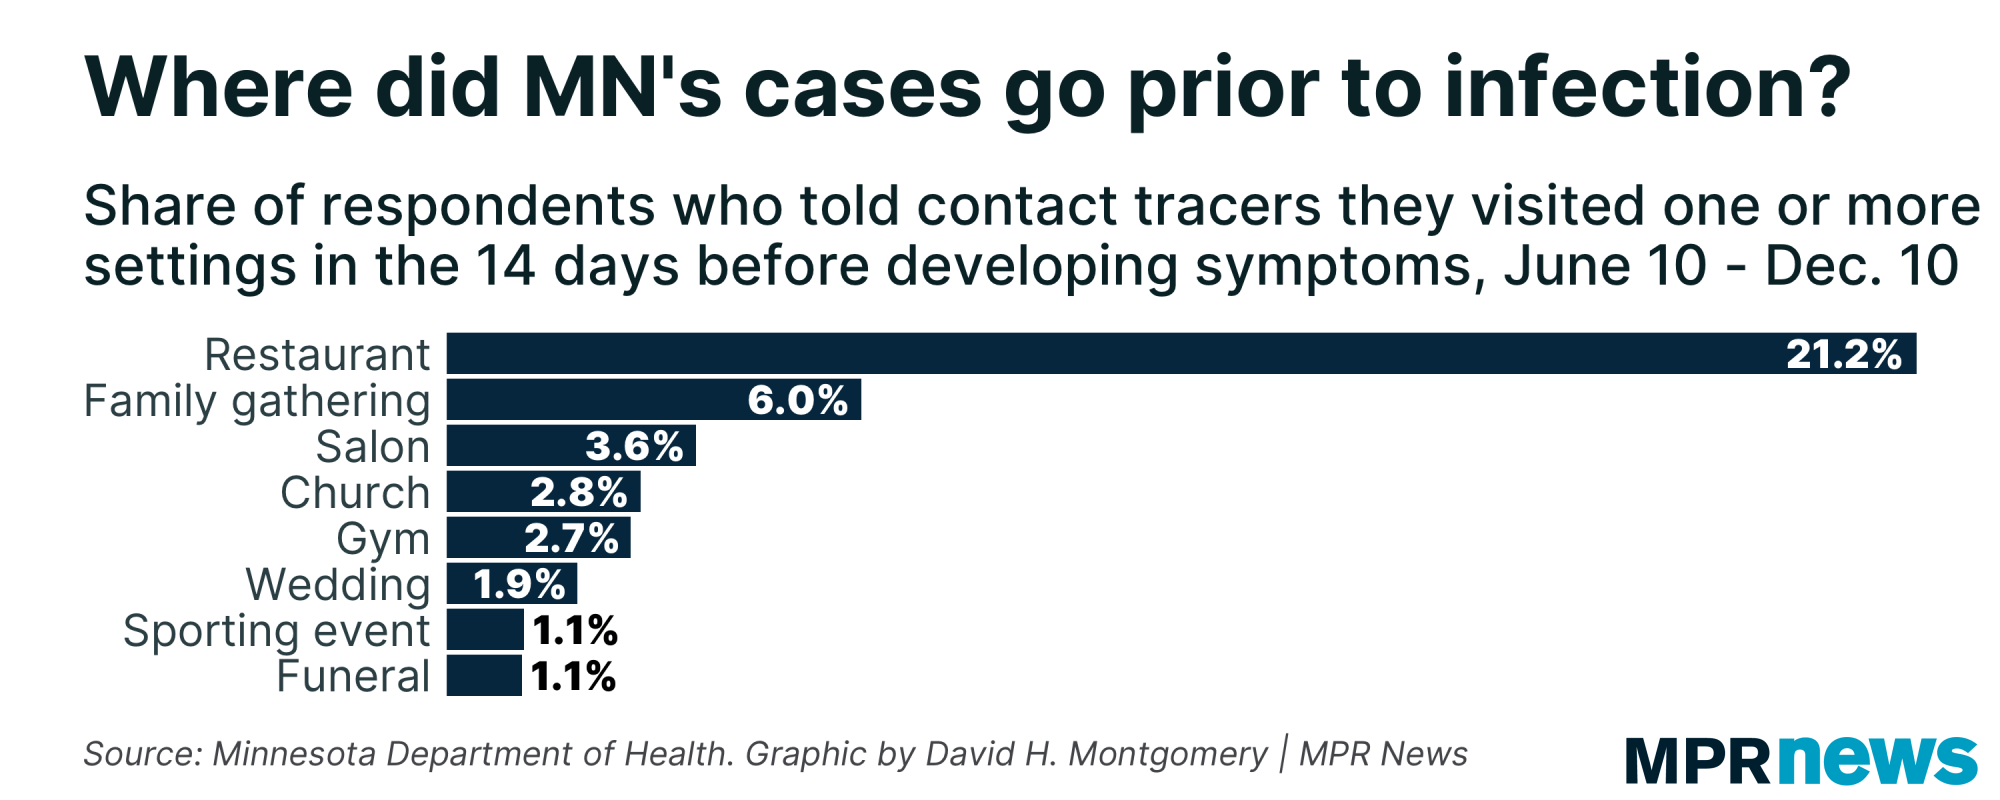 Graphic: Where did Minnesota's COVID-19 cases go prior to infection?